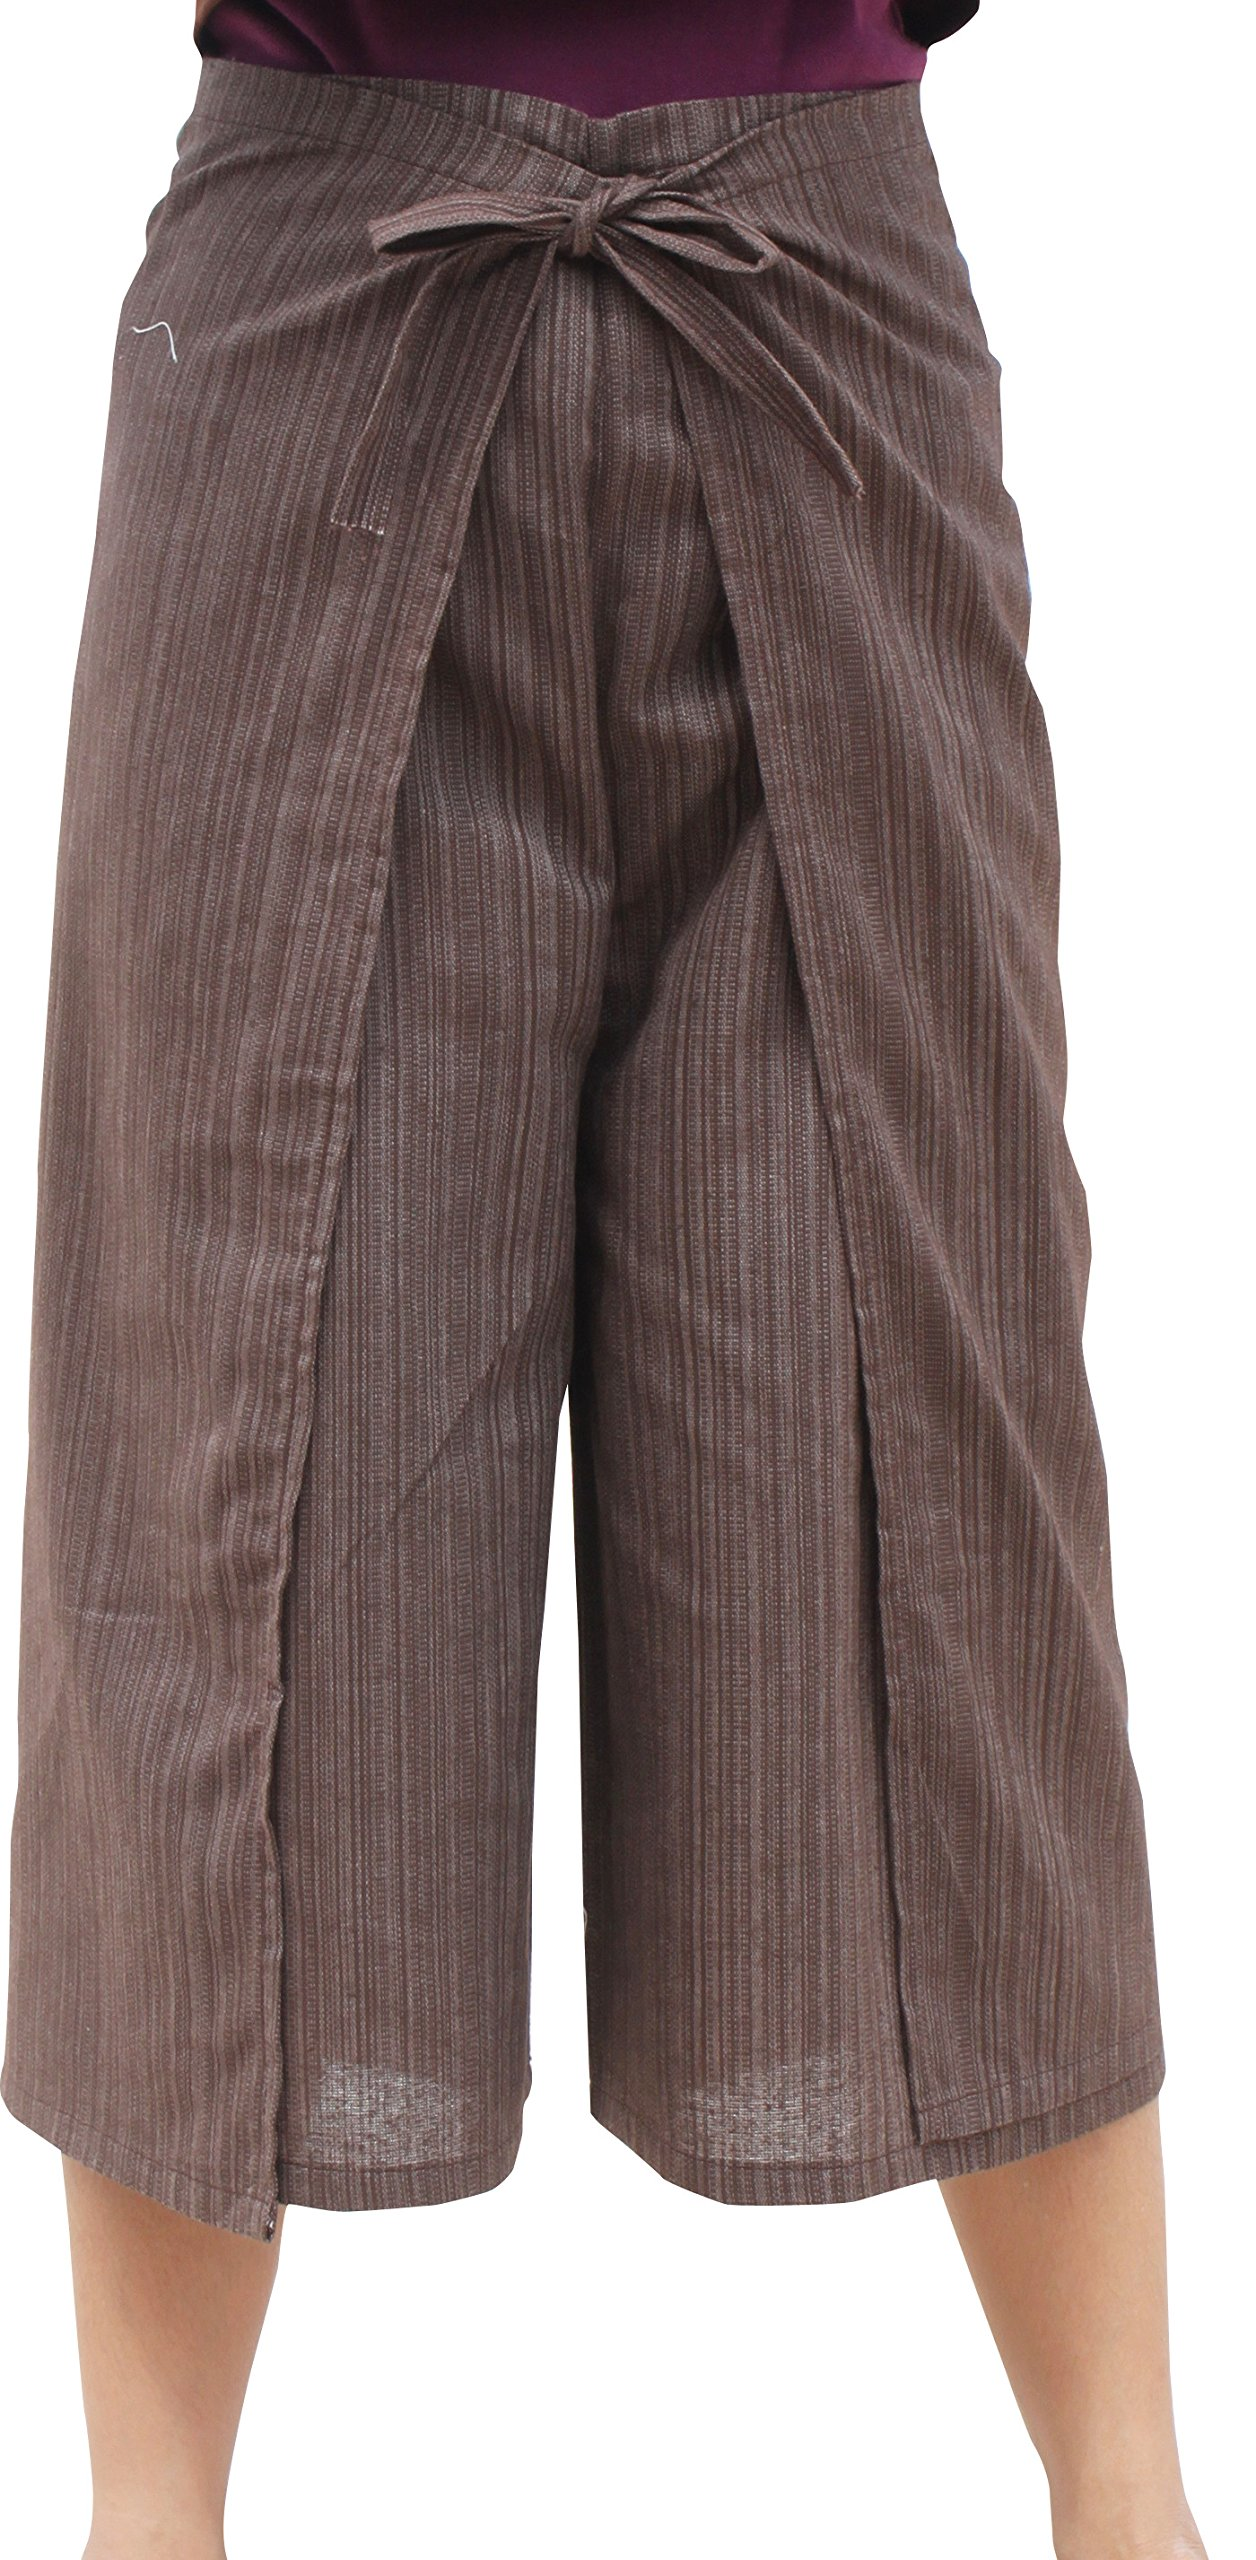 RaanPahMuang Drive In Wrap Pants In Summer Plain Mixed Cotton, Medium, TC Cotton - bistre Brown by RaanPahMuang